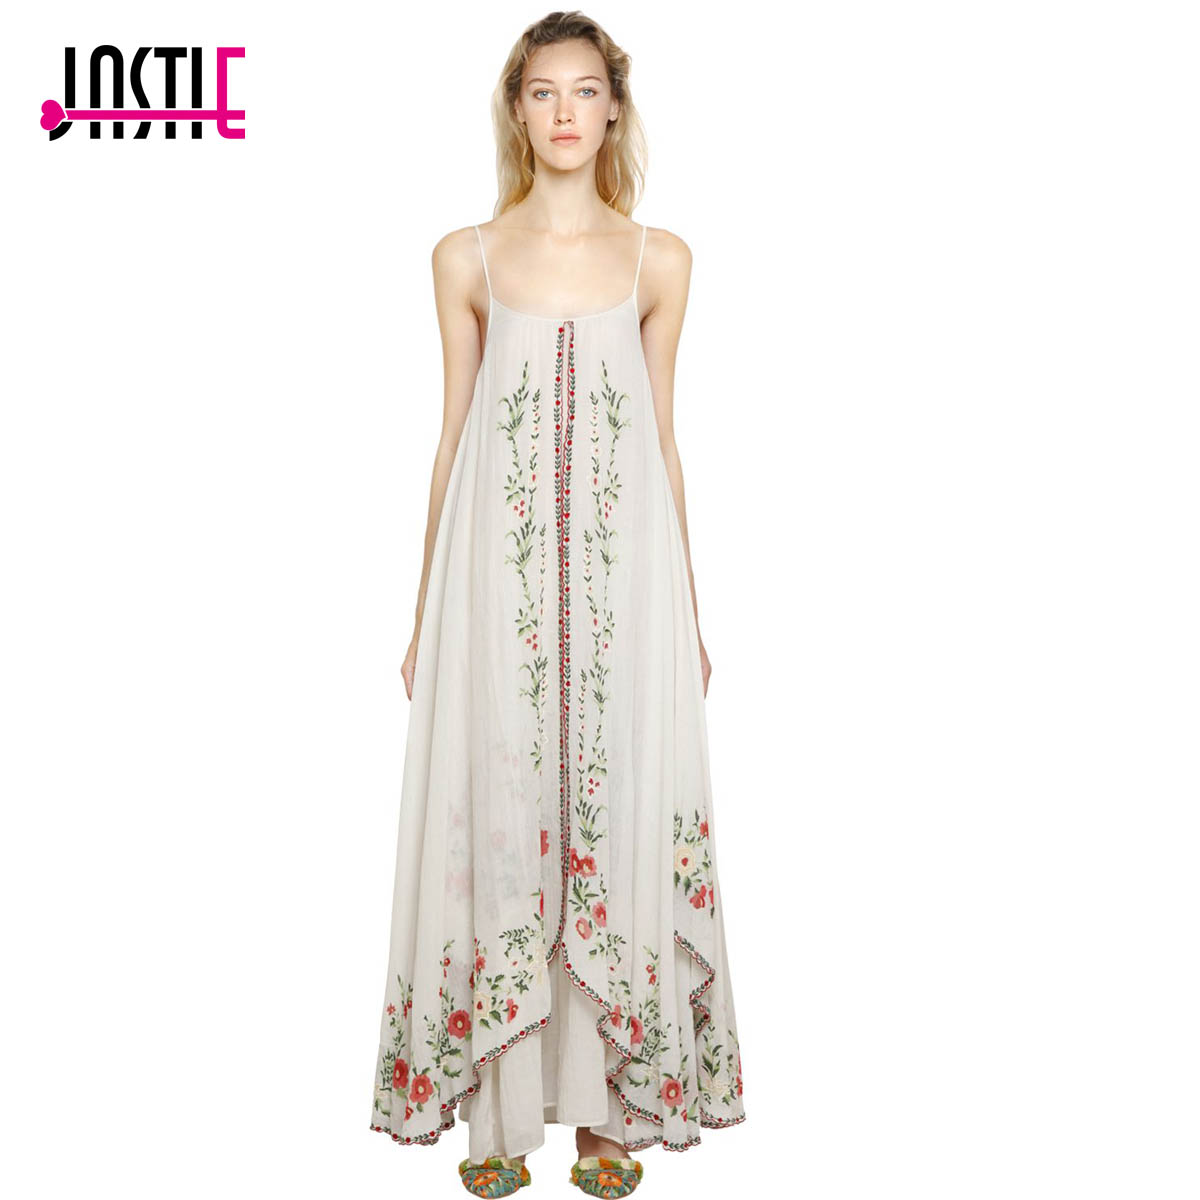 Jaatie Adjustable Straps Summer Dresses Floral Embroidered Maxi Dress Ruffle Hem Boho Dress Female Vestidos 2017 Women clothing knot side floral asymmetrical ruffle hem dress